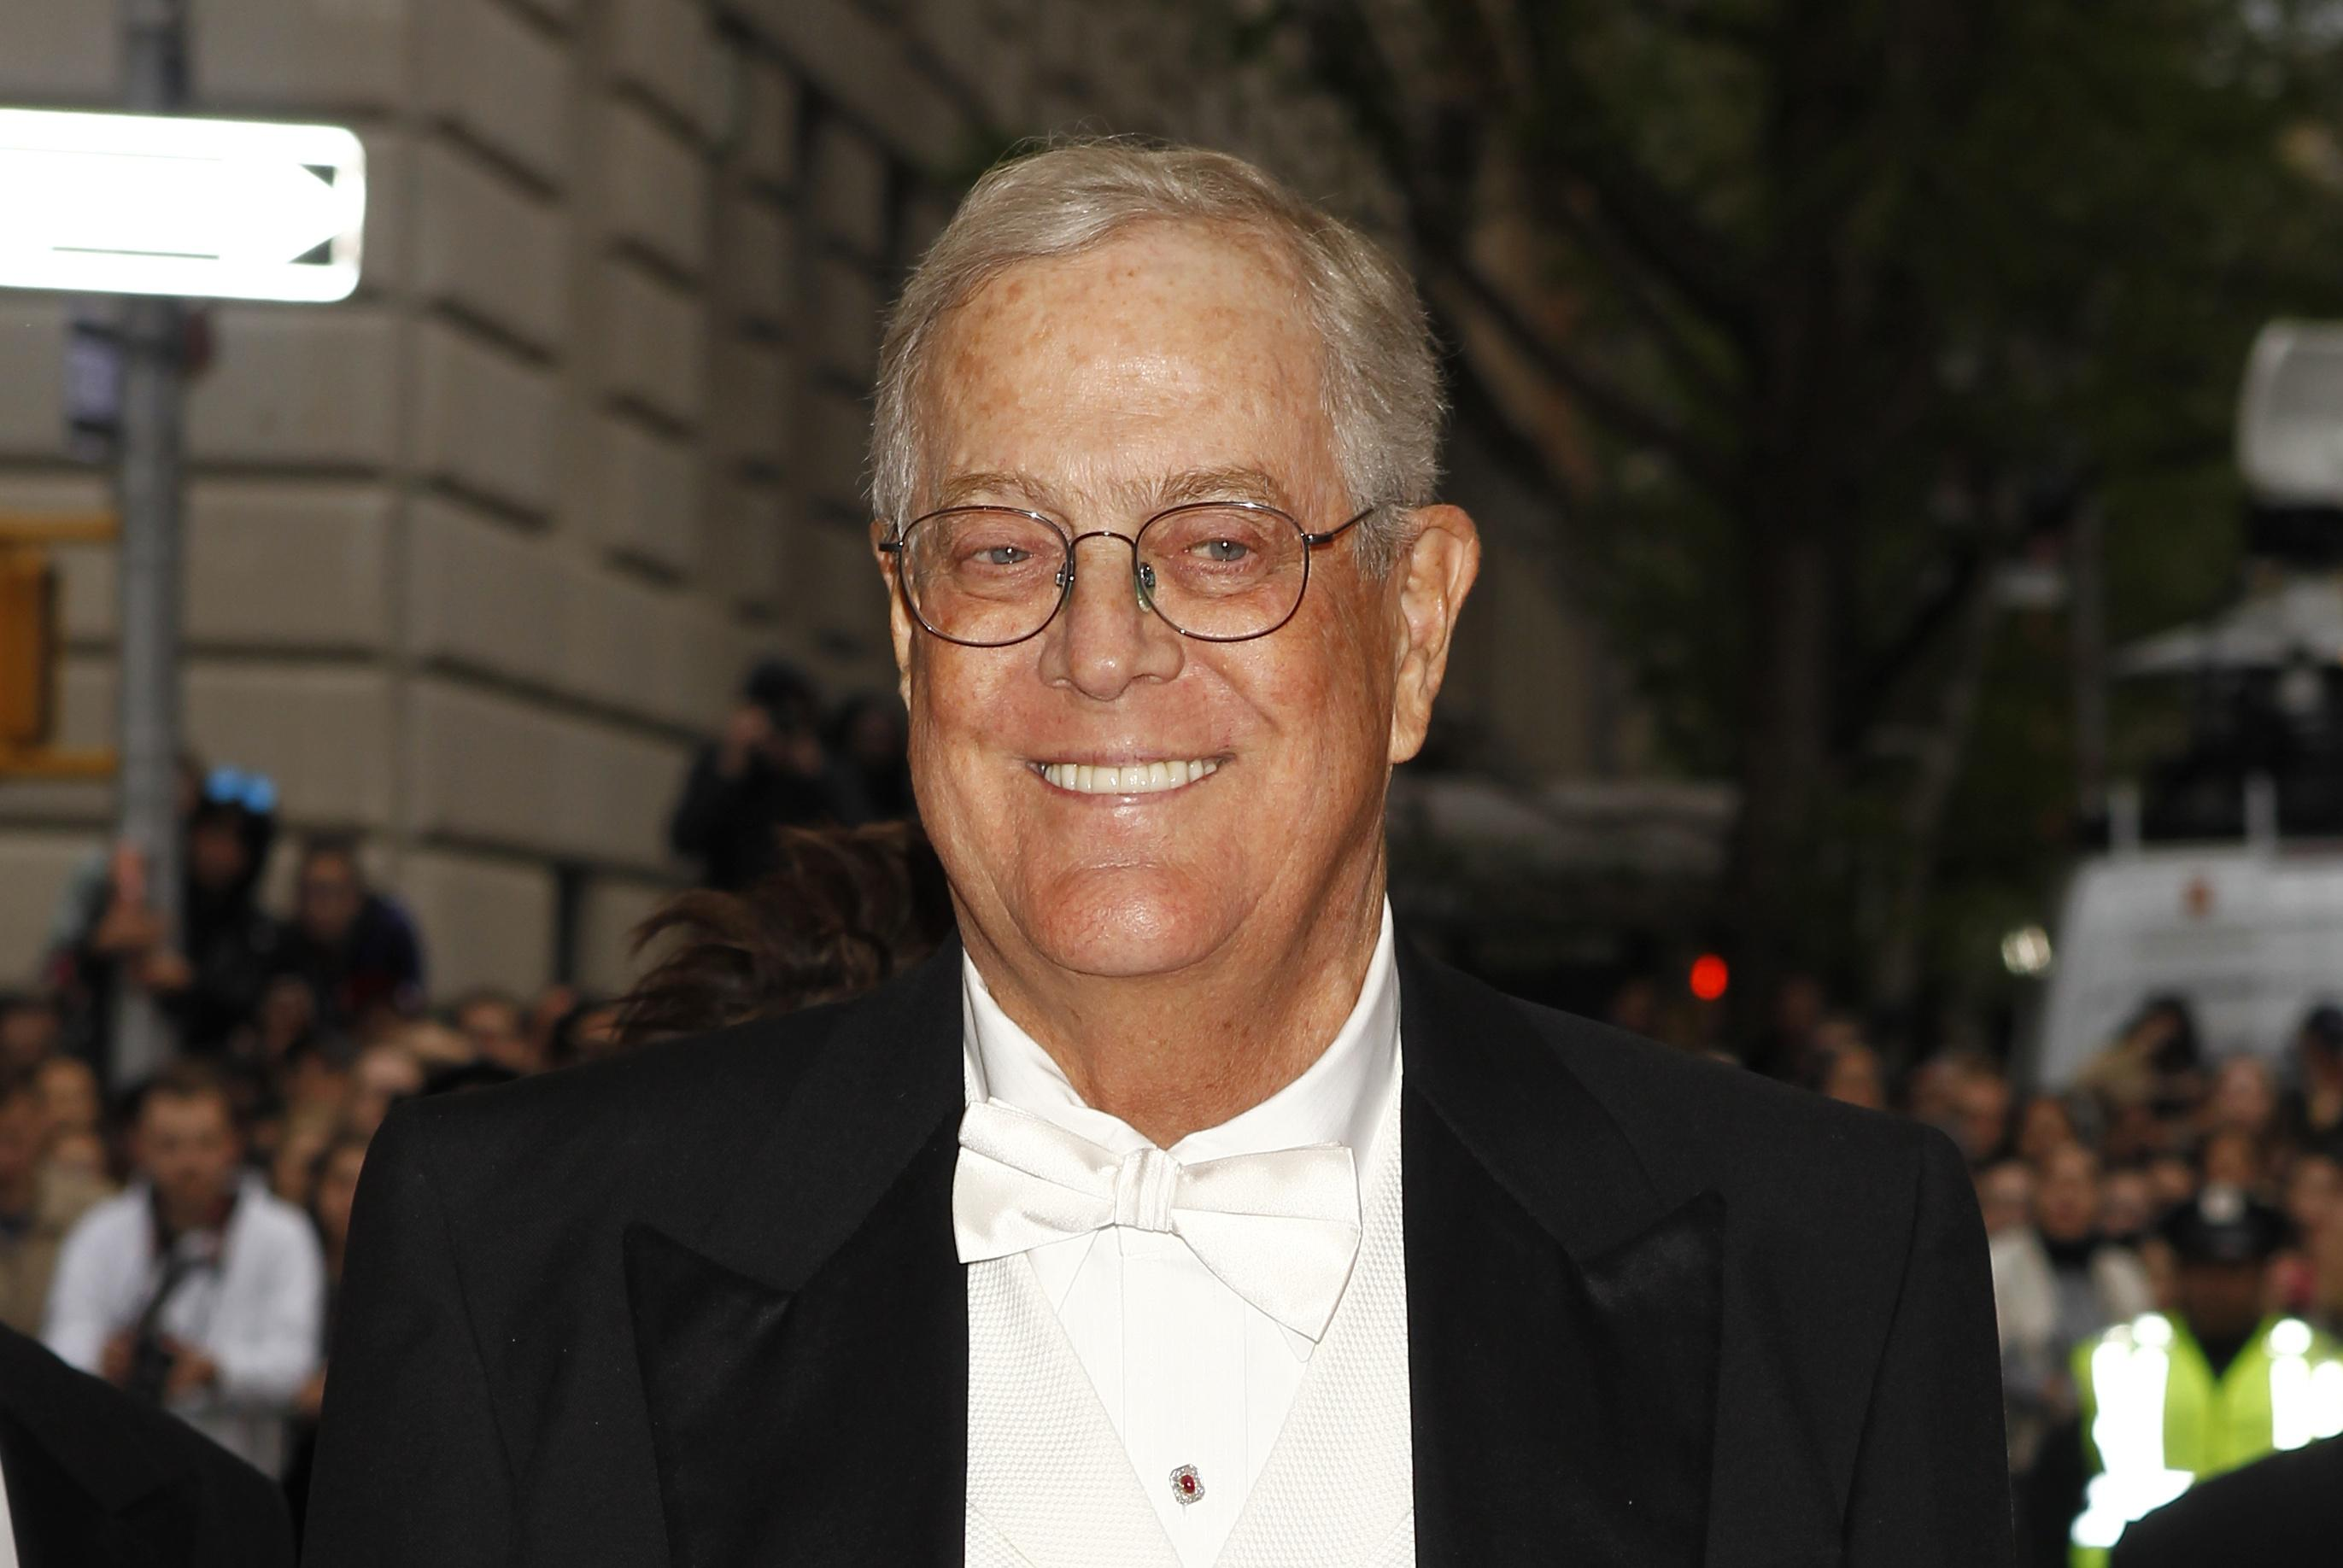 Billionaire Industrialist David Koch Retires From Business and Politics